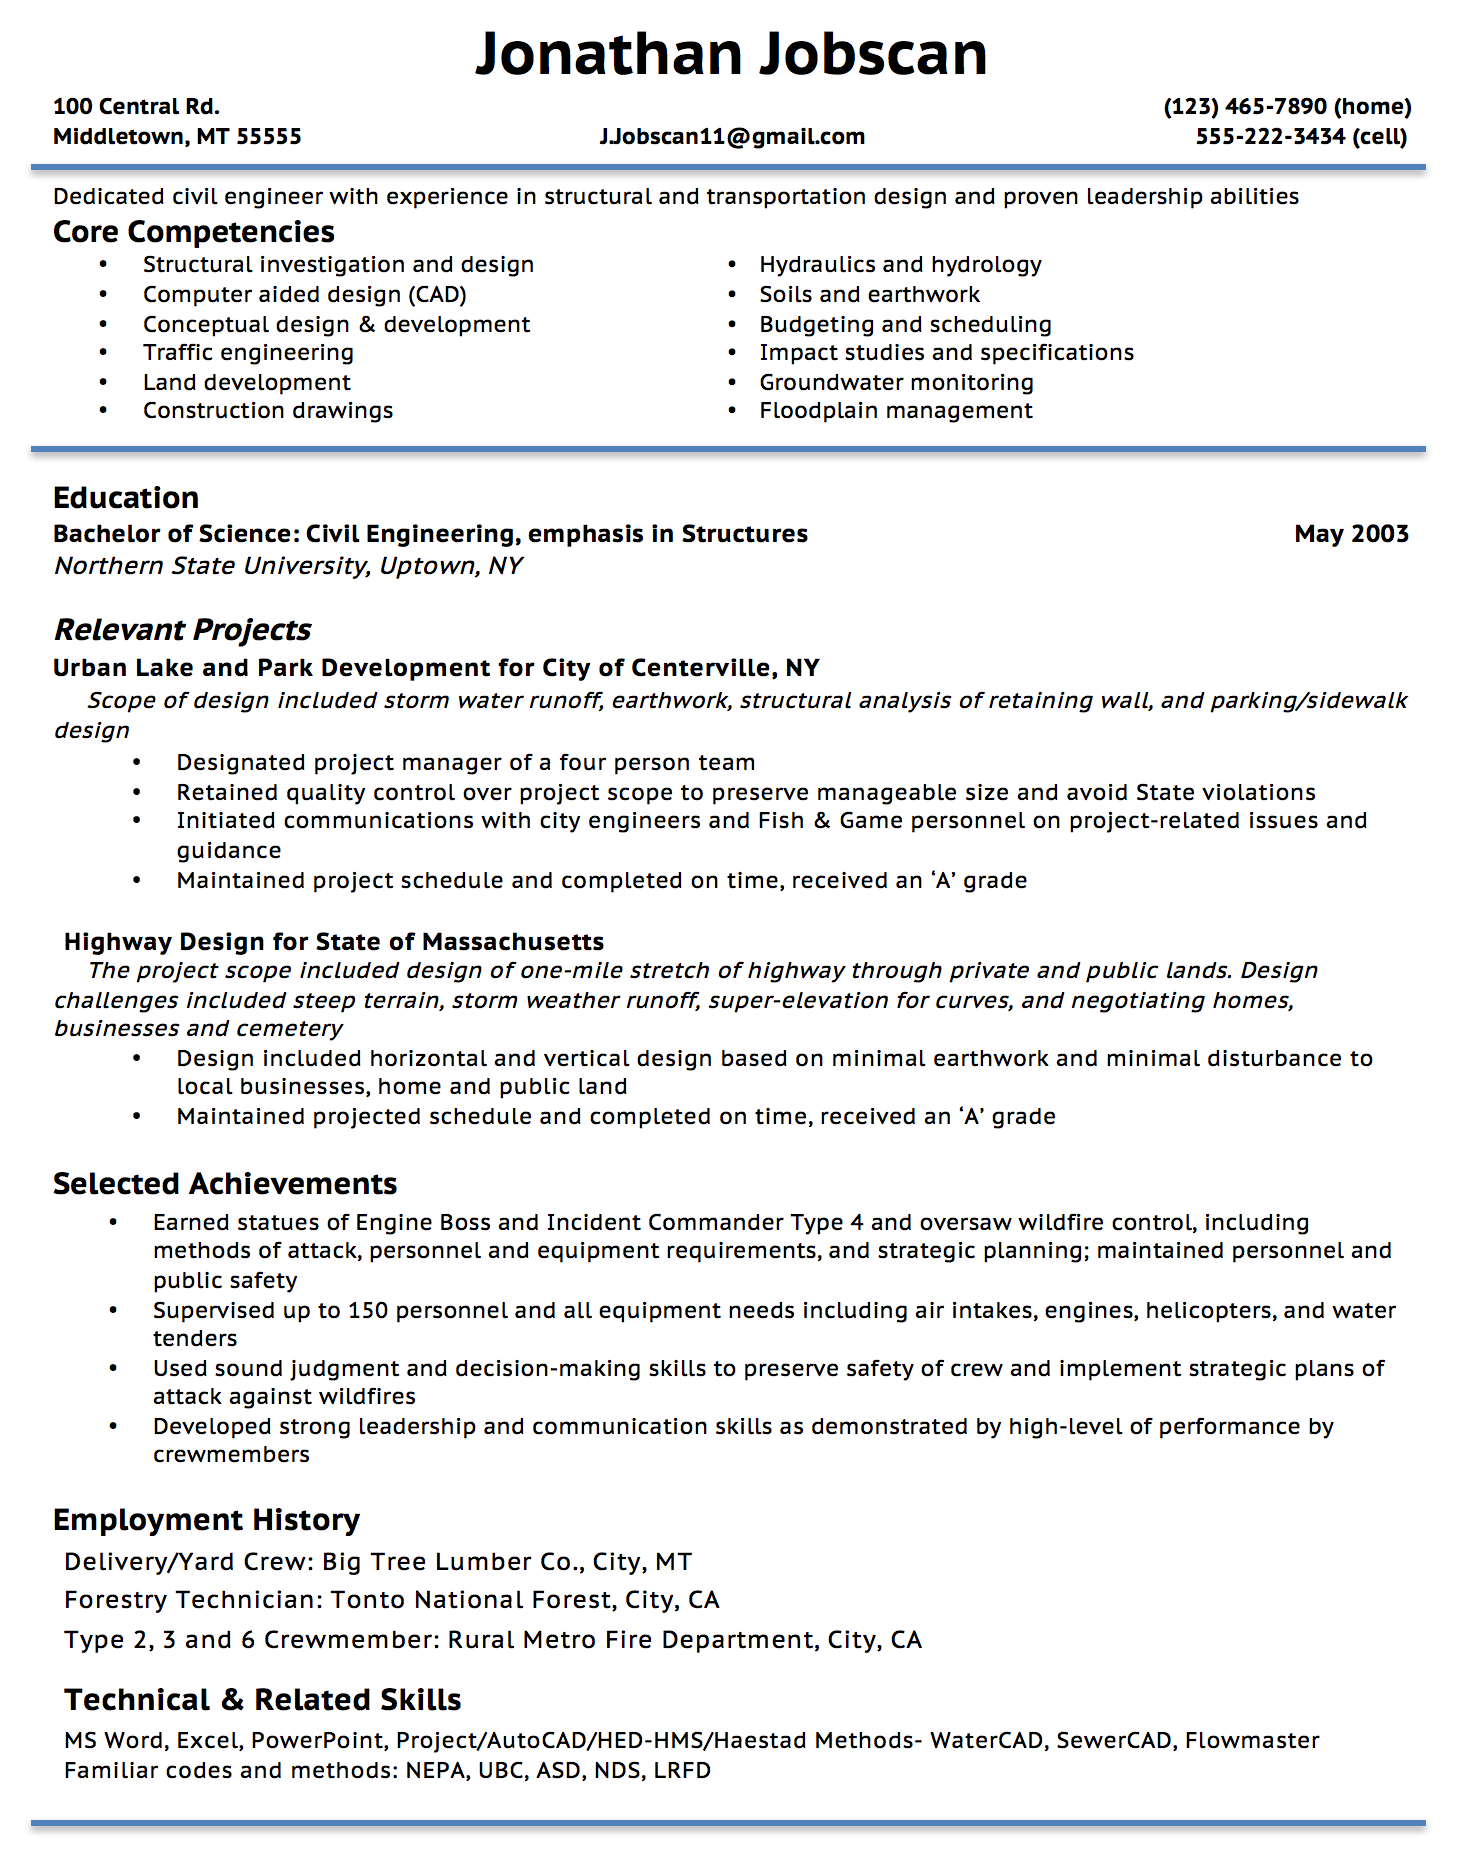 Picnictoimpeachus  Remarkable Resume Writing Guide  Jobscan With Magnificent Example Of A Functional Resume Format With Amusing Post Office Resume Also Resume Competencies In Addition Resume Key Phrases And Line Cook Resume Samples As Well As What Should A Cover Letter For A Resume Look Like Additionally Sample Marketing Resumes From Jobscanco With Picnictoimpeachus  Magnificent Resume Writing Guide  Jobscan With Amusing Example Of A Functional Resume Format And Remarkable Post Office Resume Also Resume Competencies In Addition Resume Key Phrases From Jobscanco